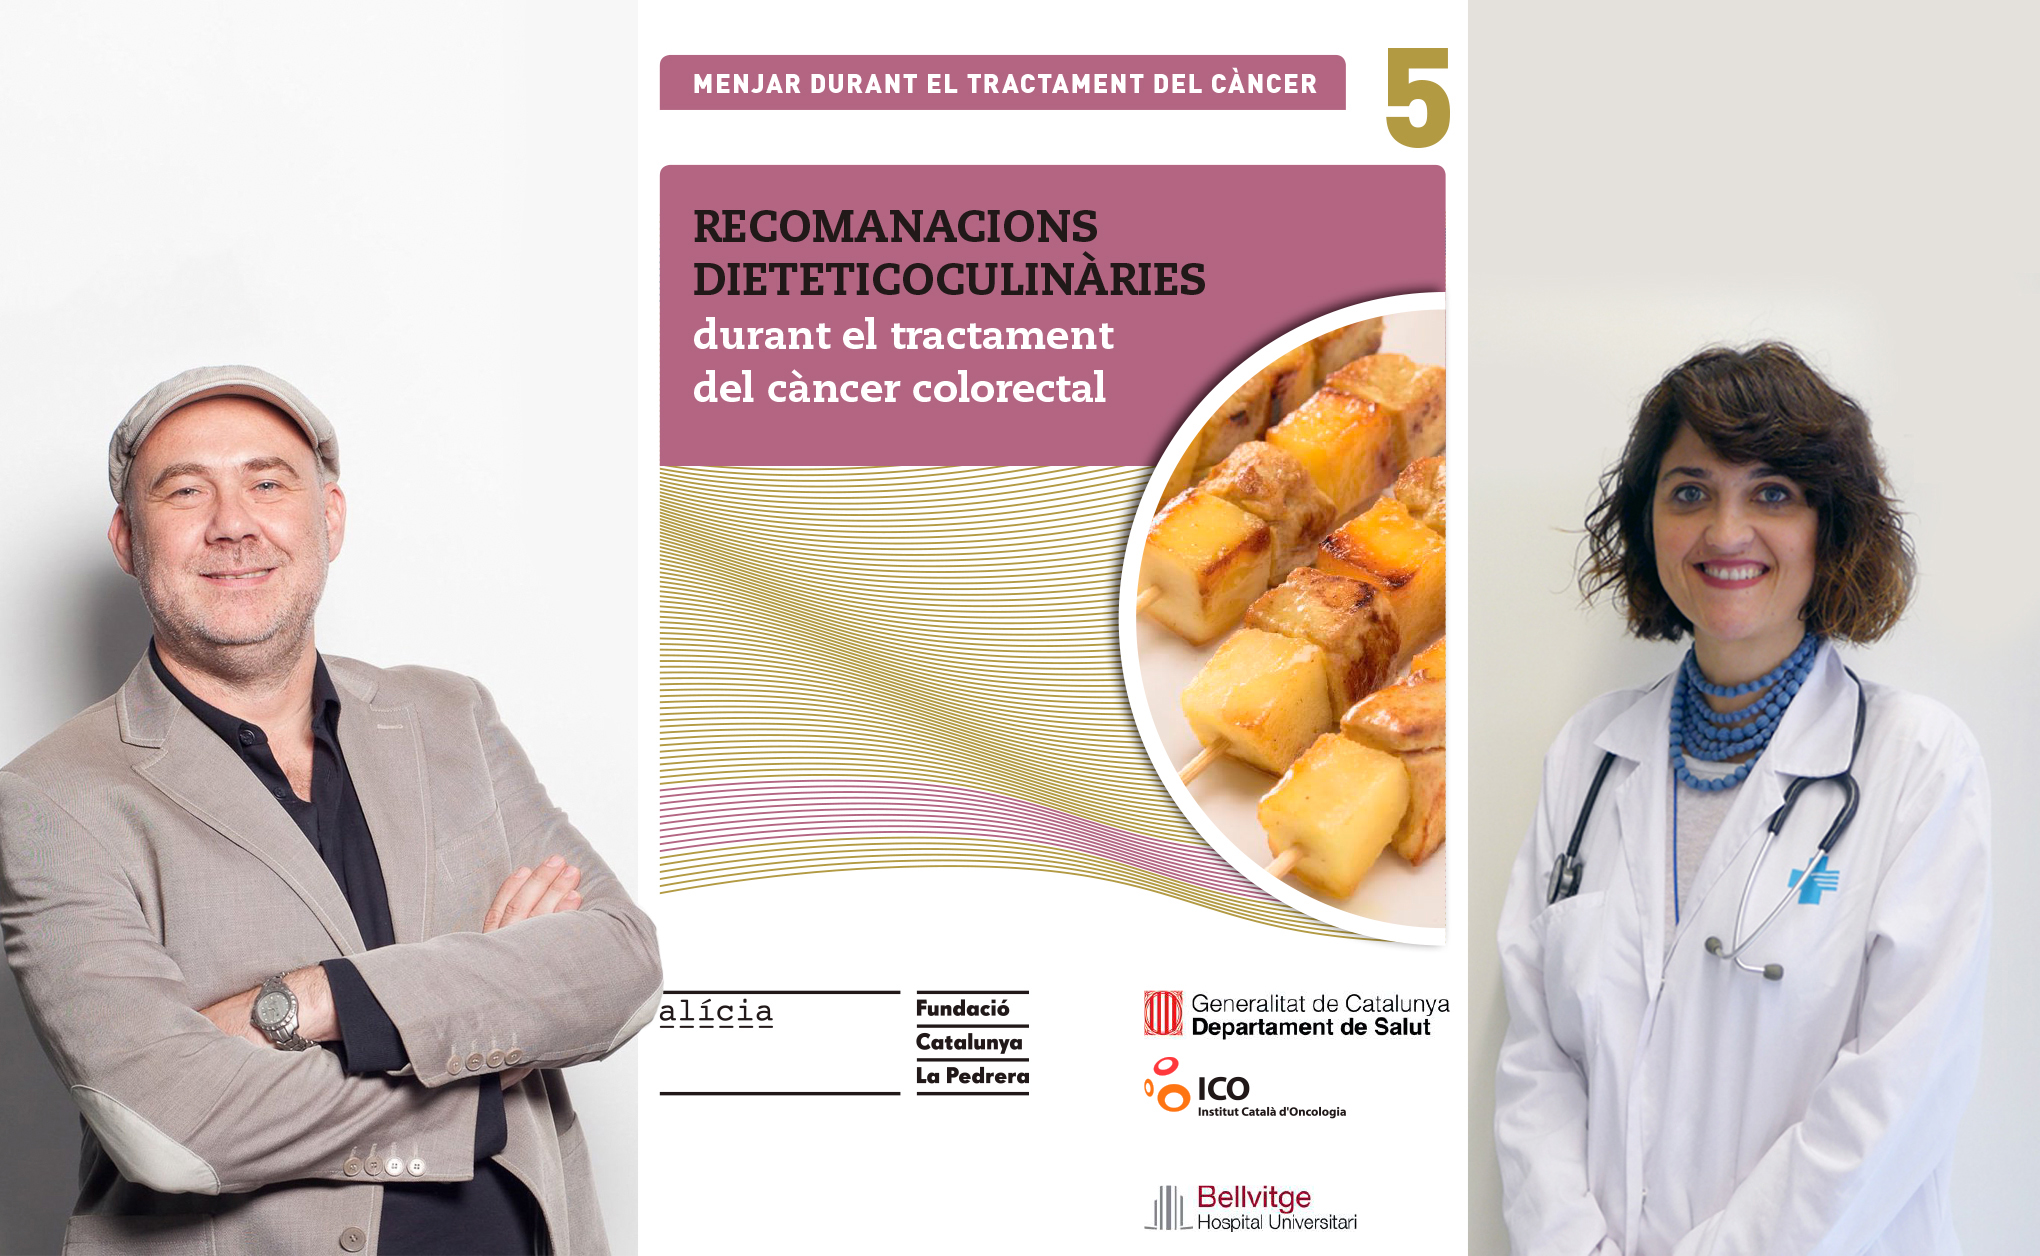 ciencia-afterwork-la-marato-tv3-cancer